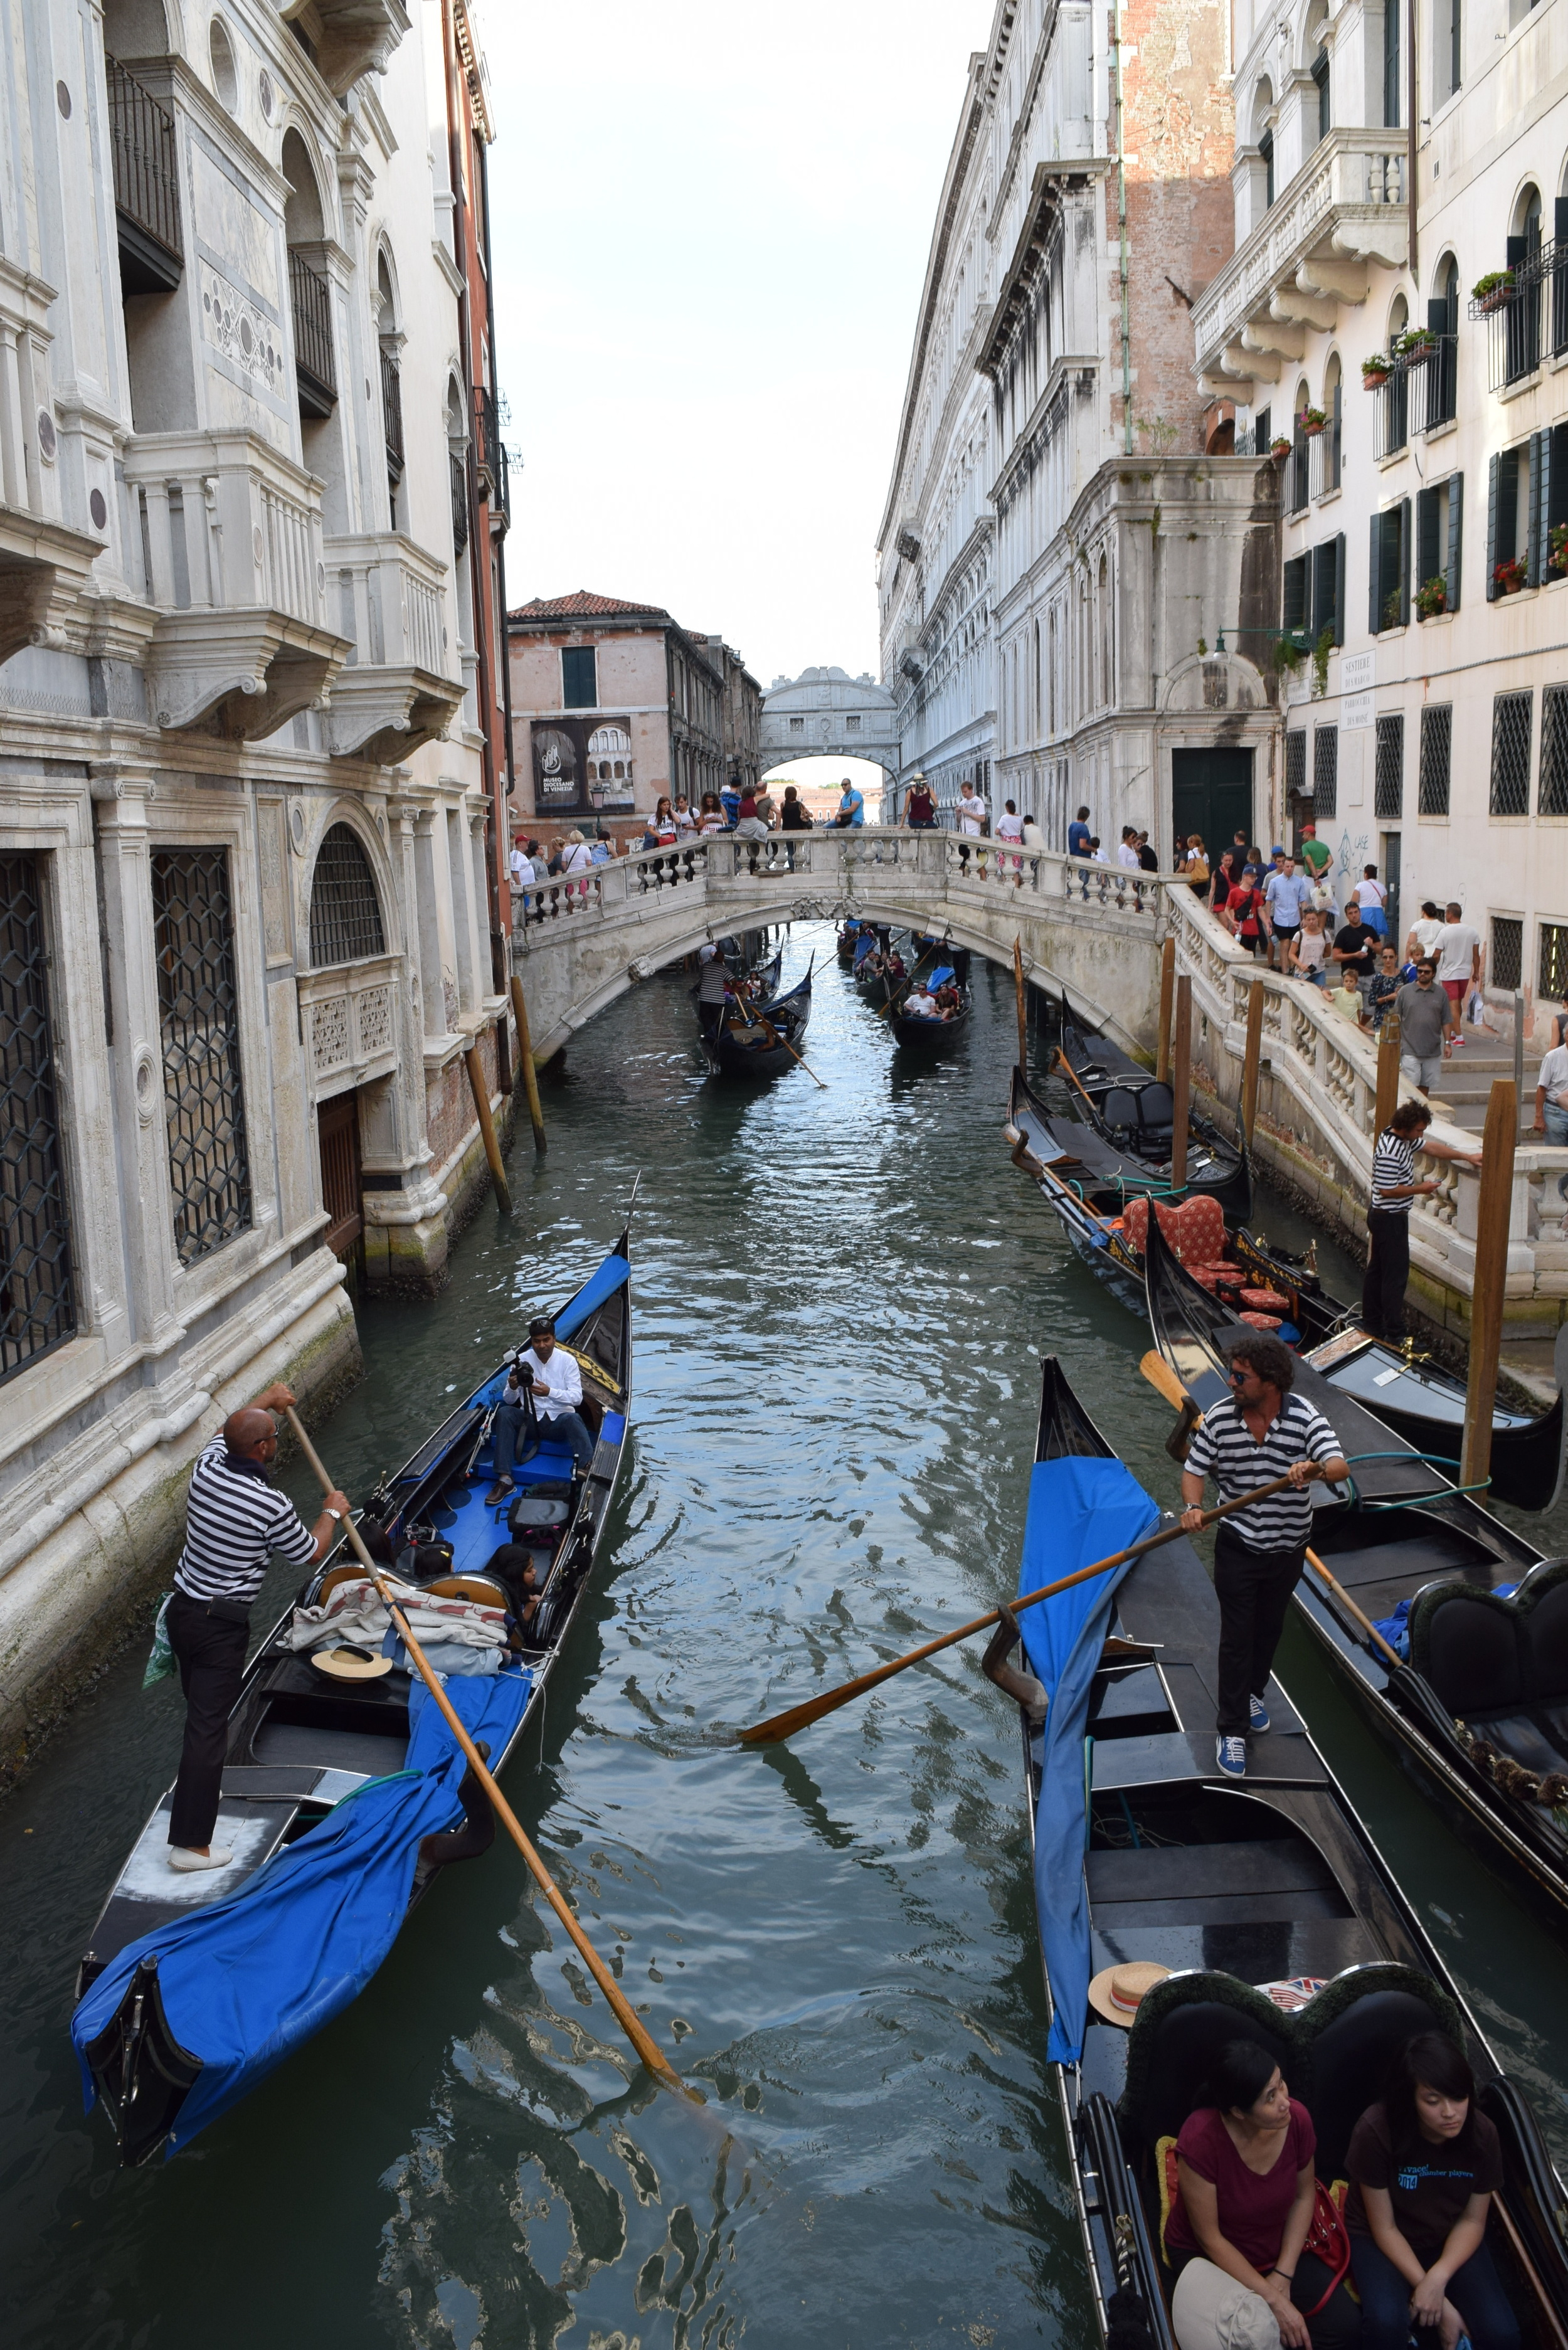 Gondola's floating down one of Venice's canals